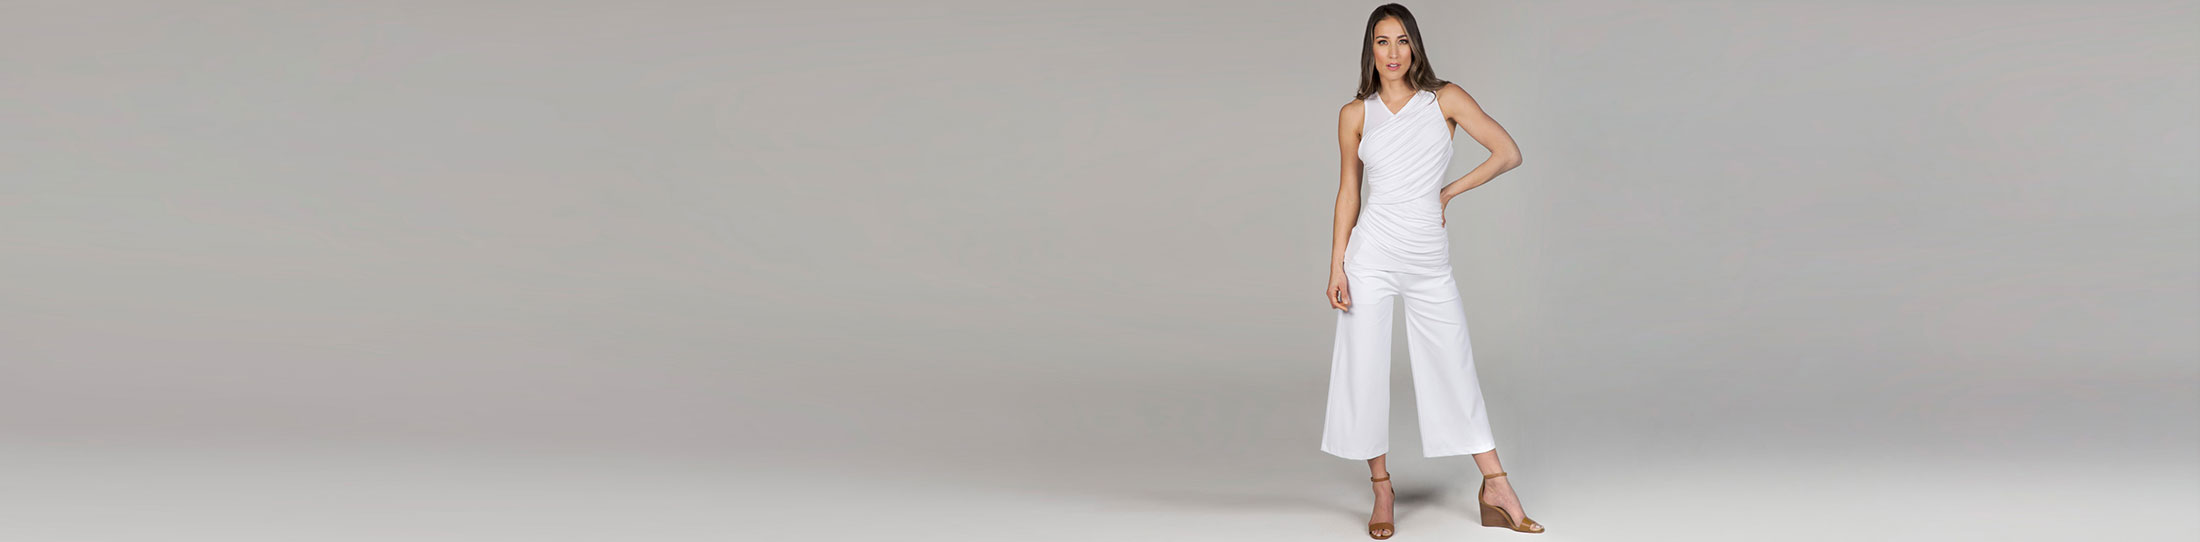 product-category-banner-ready-to-wear-white.jpg